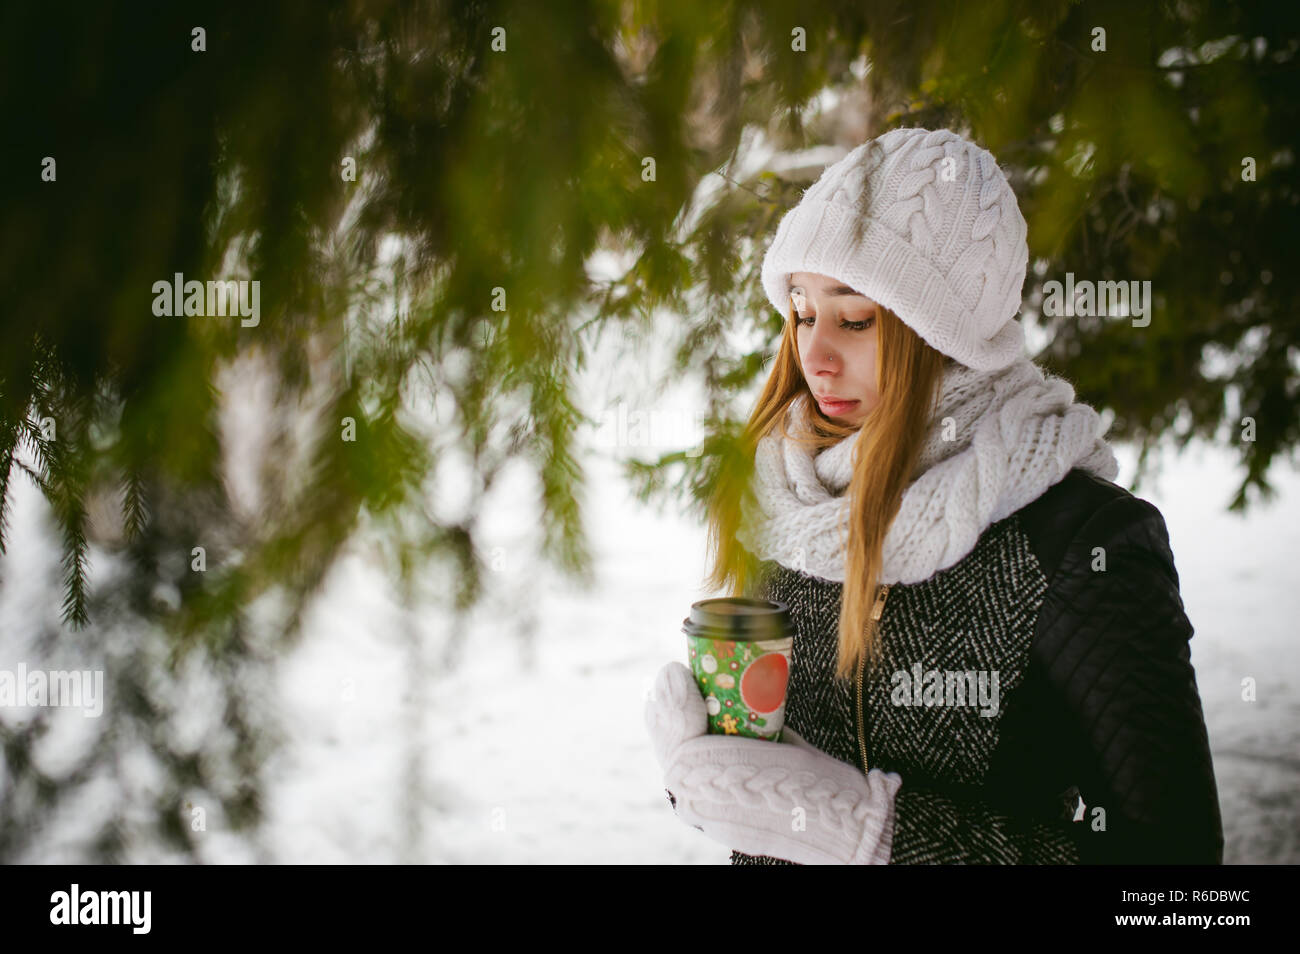 c86131cb9cba94 Portrait of cute woman in white scarf and hat knitted coat on outdoors  background of snow and blurred fir branches in winter. girl holds a coffee  cup in ...